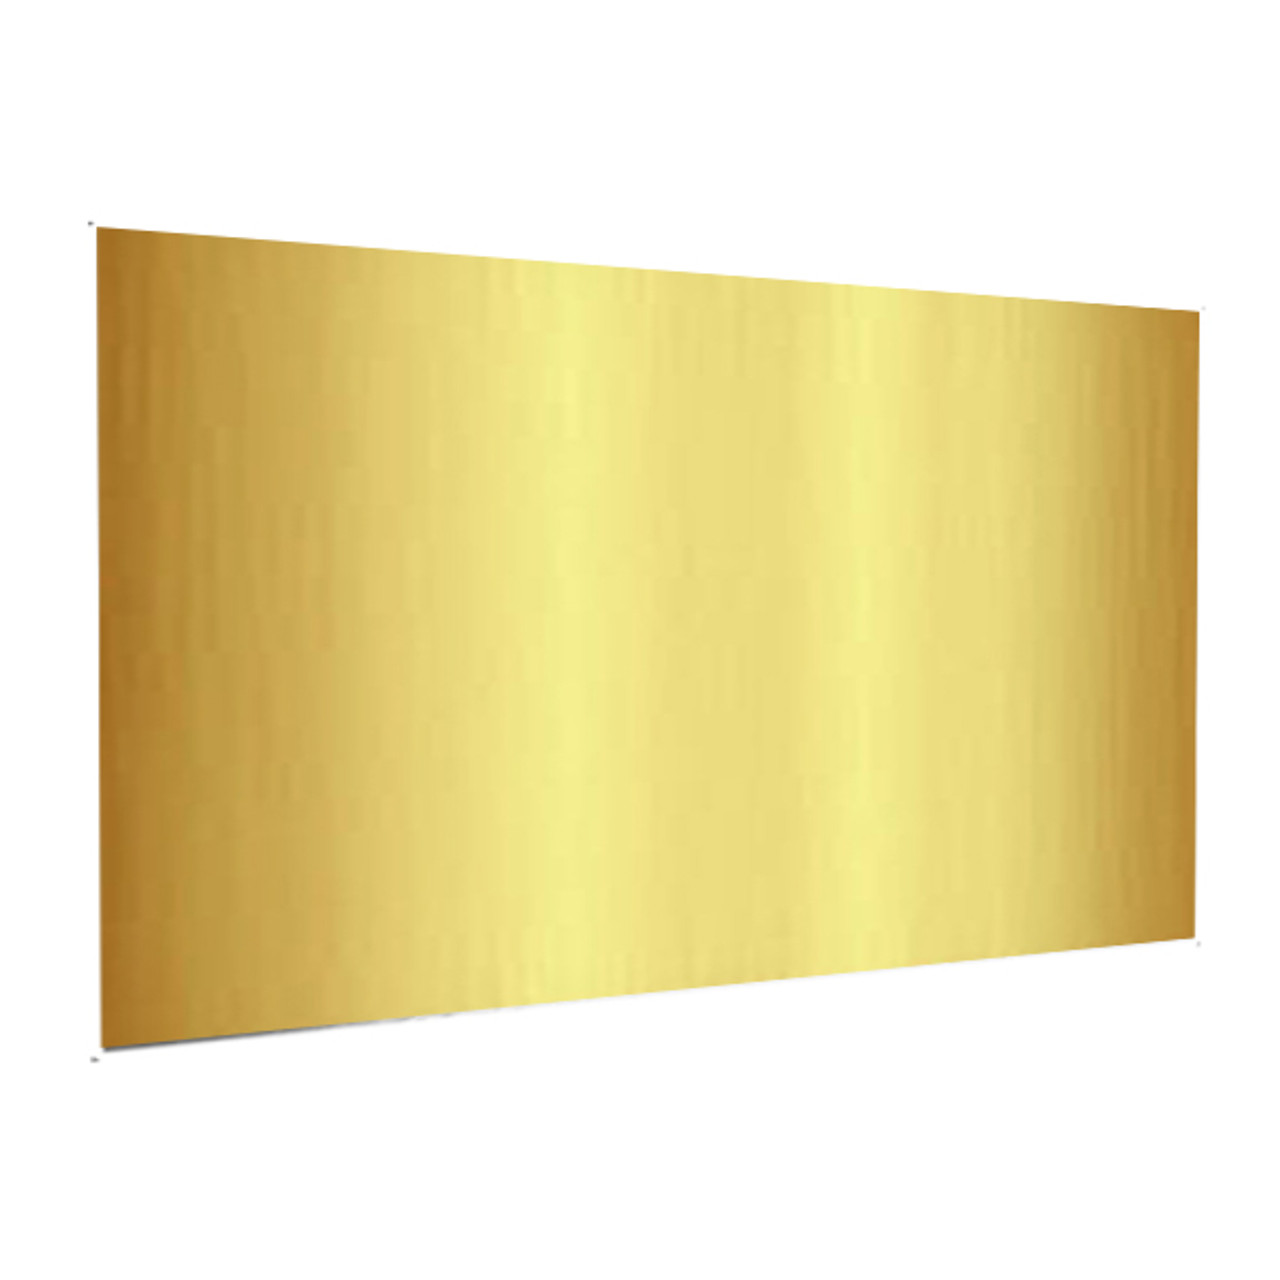 "Showcard - Glossy Gold - 28"" x 44"""